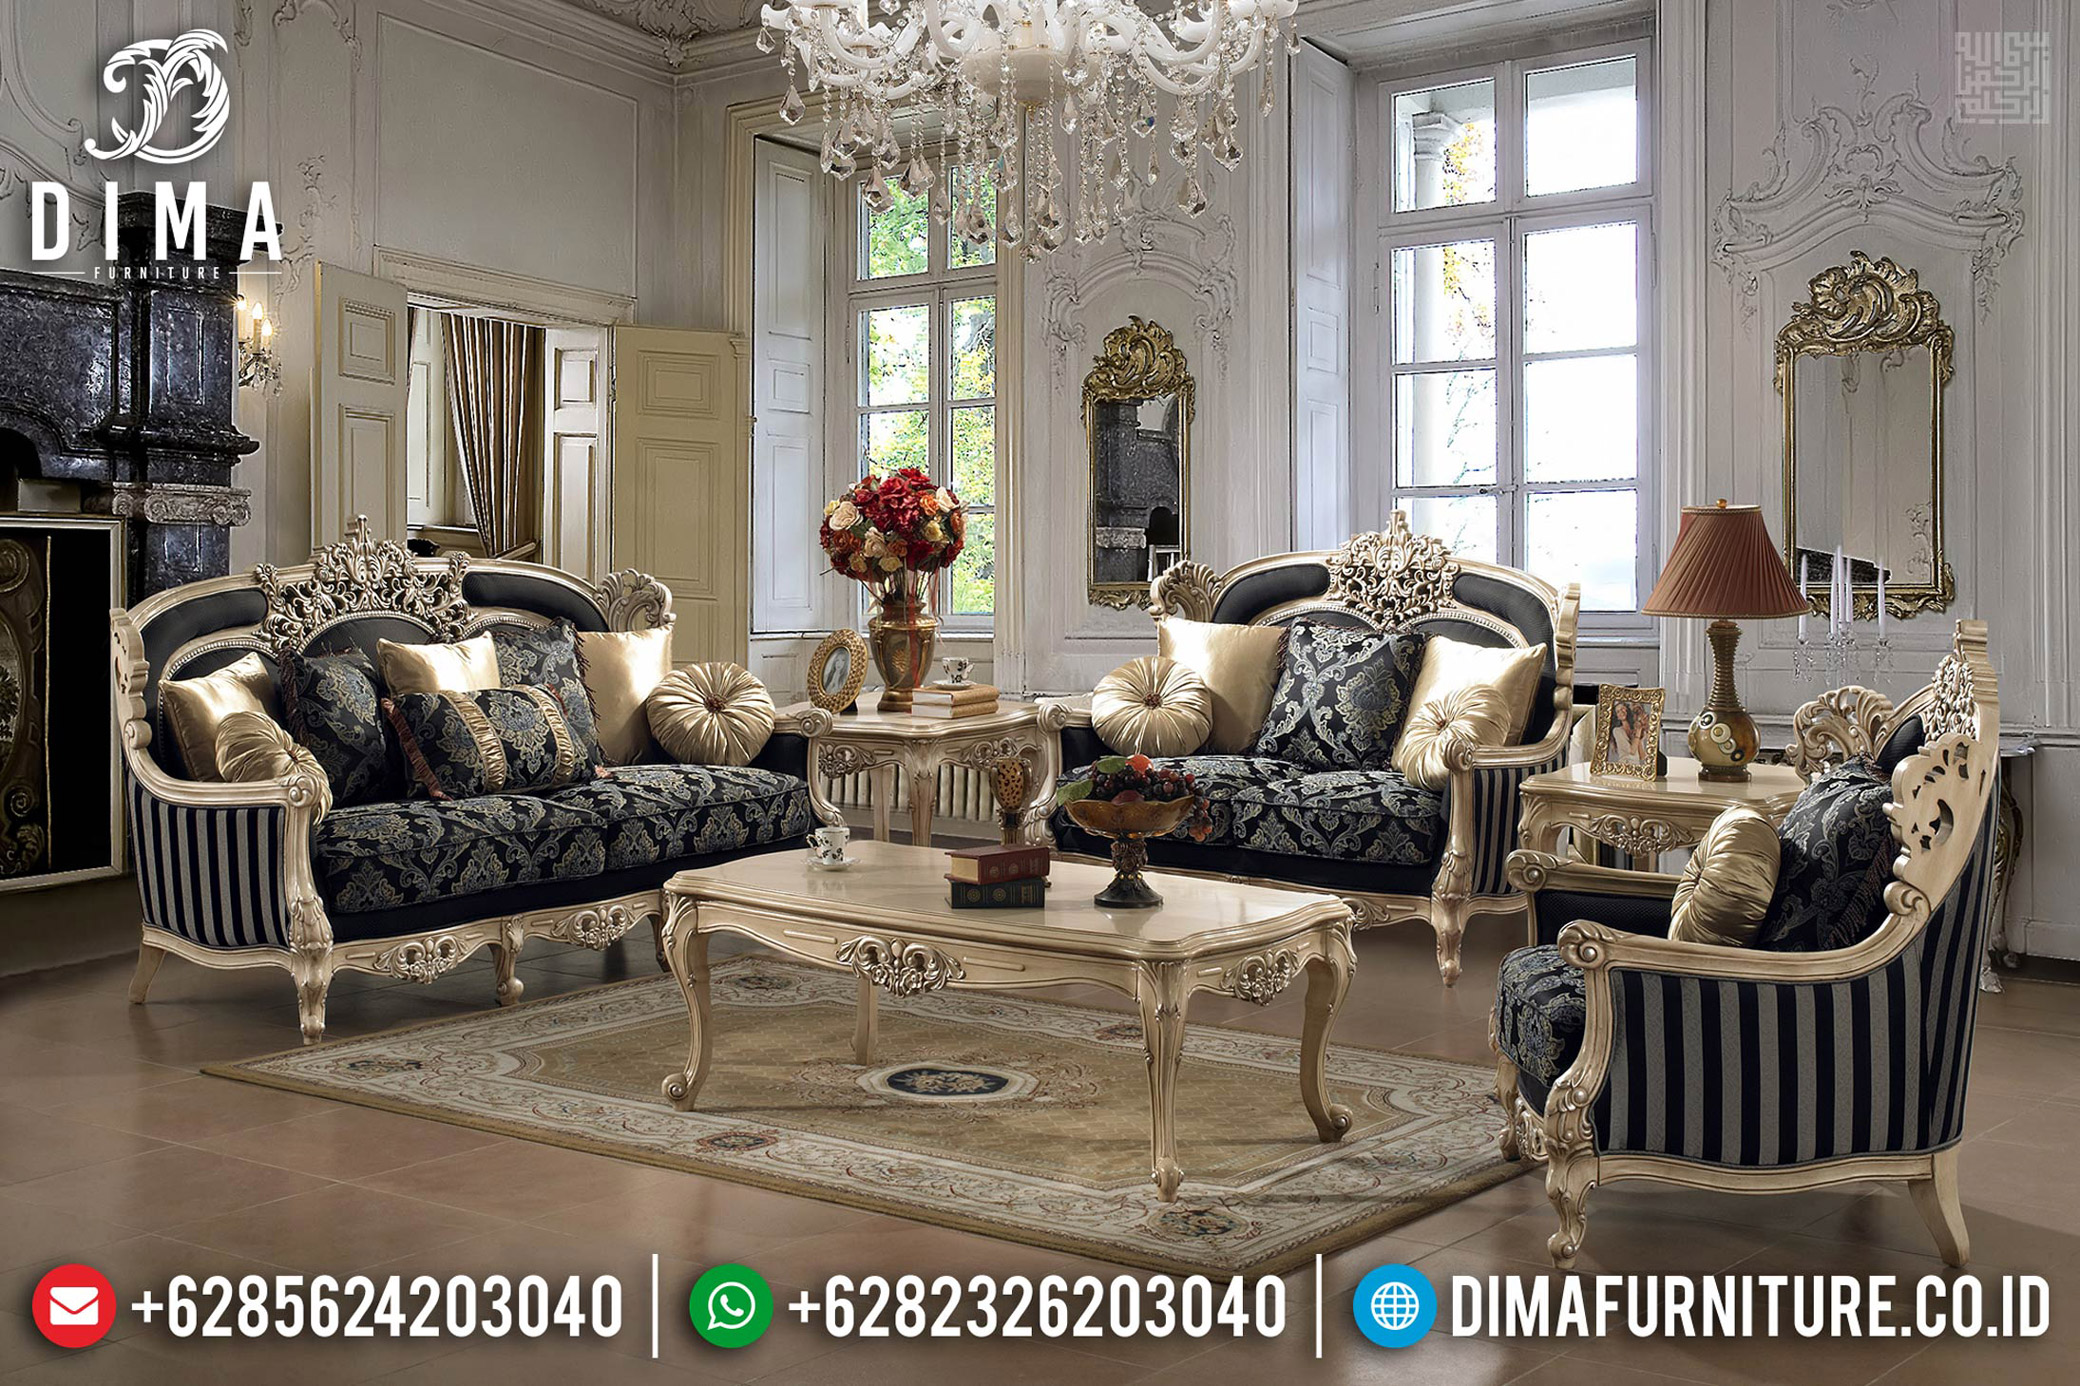 Sofa Tamu Mewah Gloria Design Luxury Carving Jepara TTJ-0560